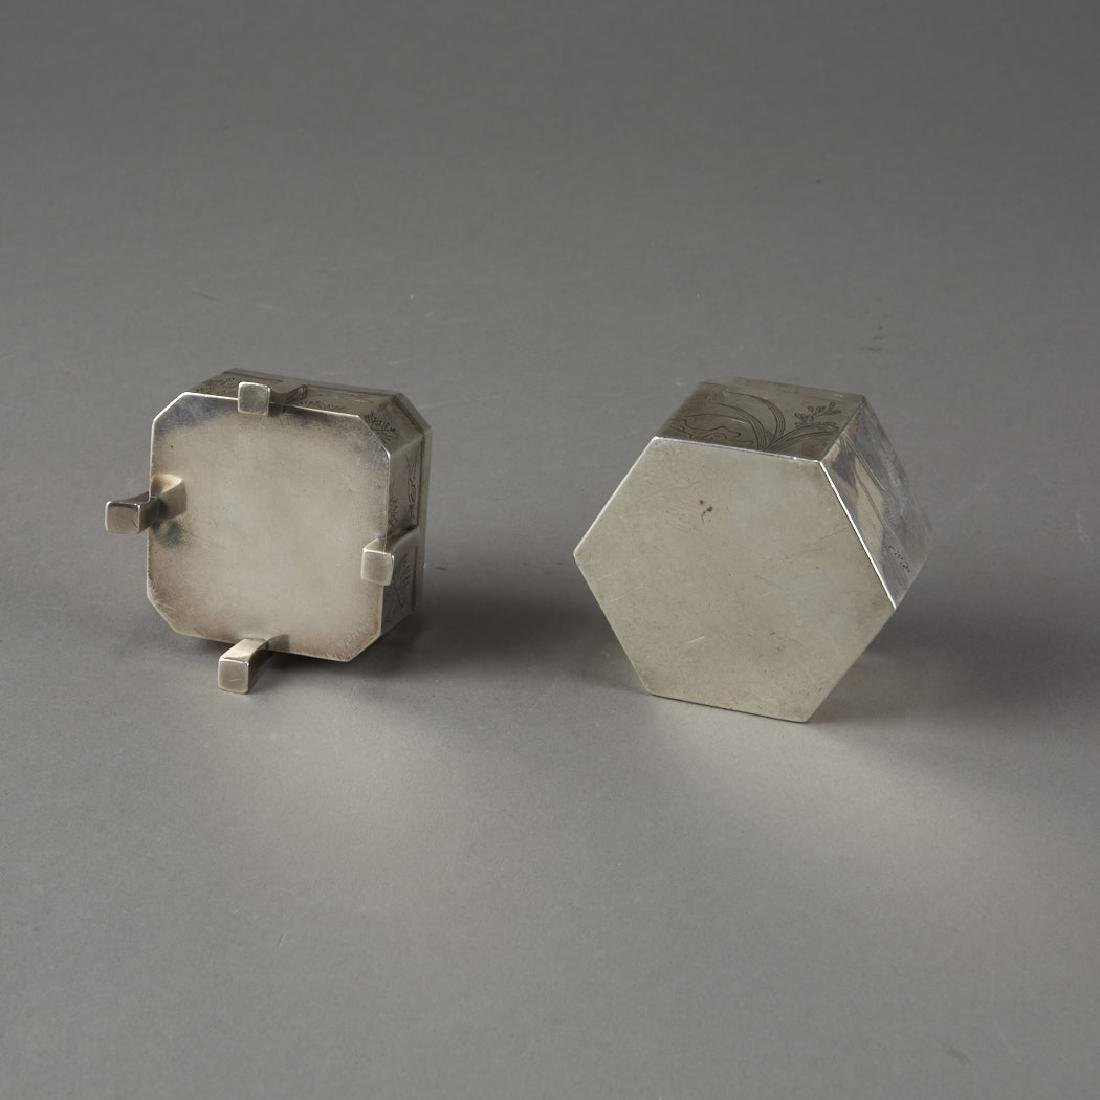 Japanese 20th C. Silver Boxes Decoration - 9